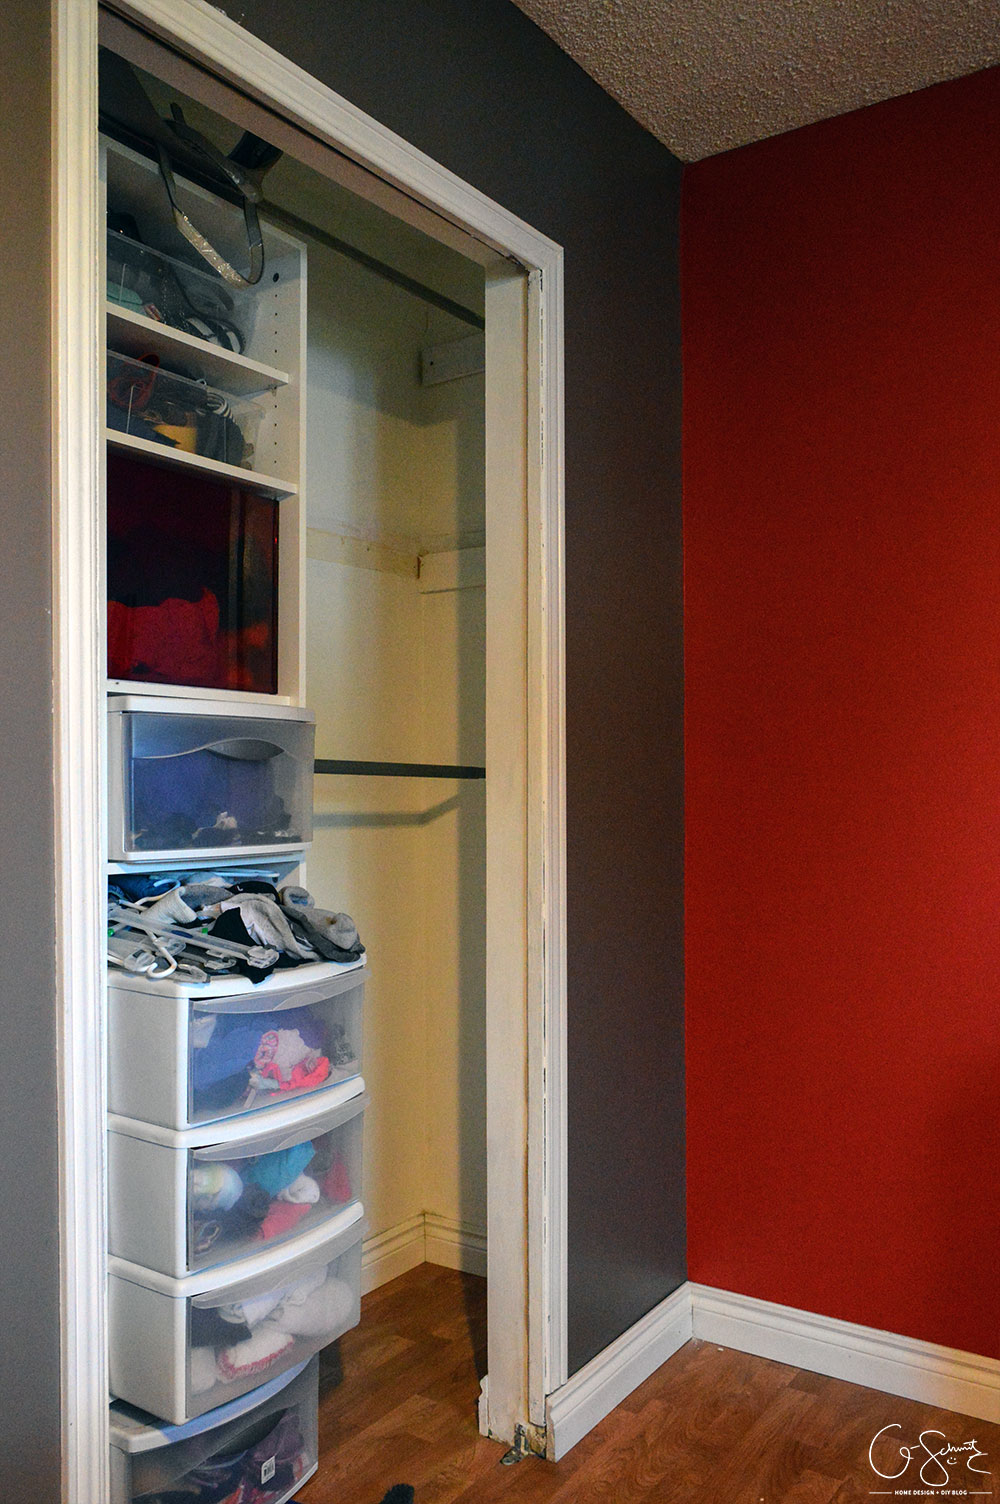 Renovating a master closet is a great way to get your creative juices flowing. Not having to tackle plumbing and electrical OR having to deal with structural walls makes this an easy DIY project!